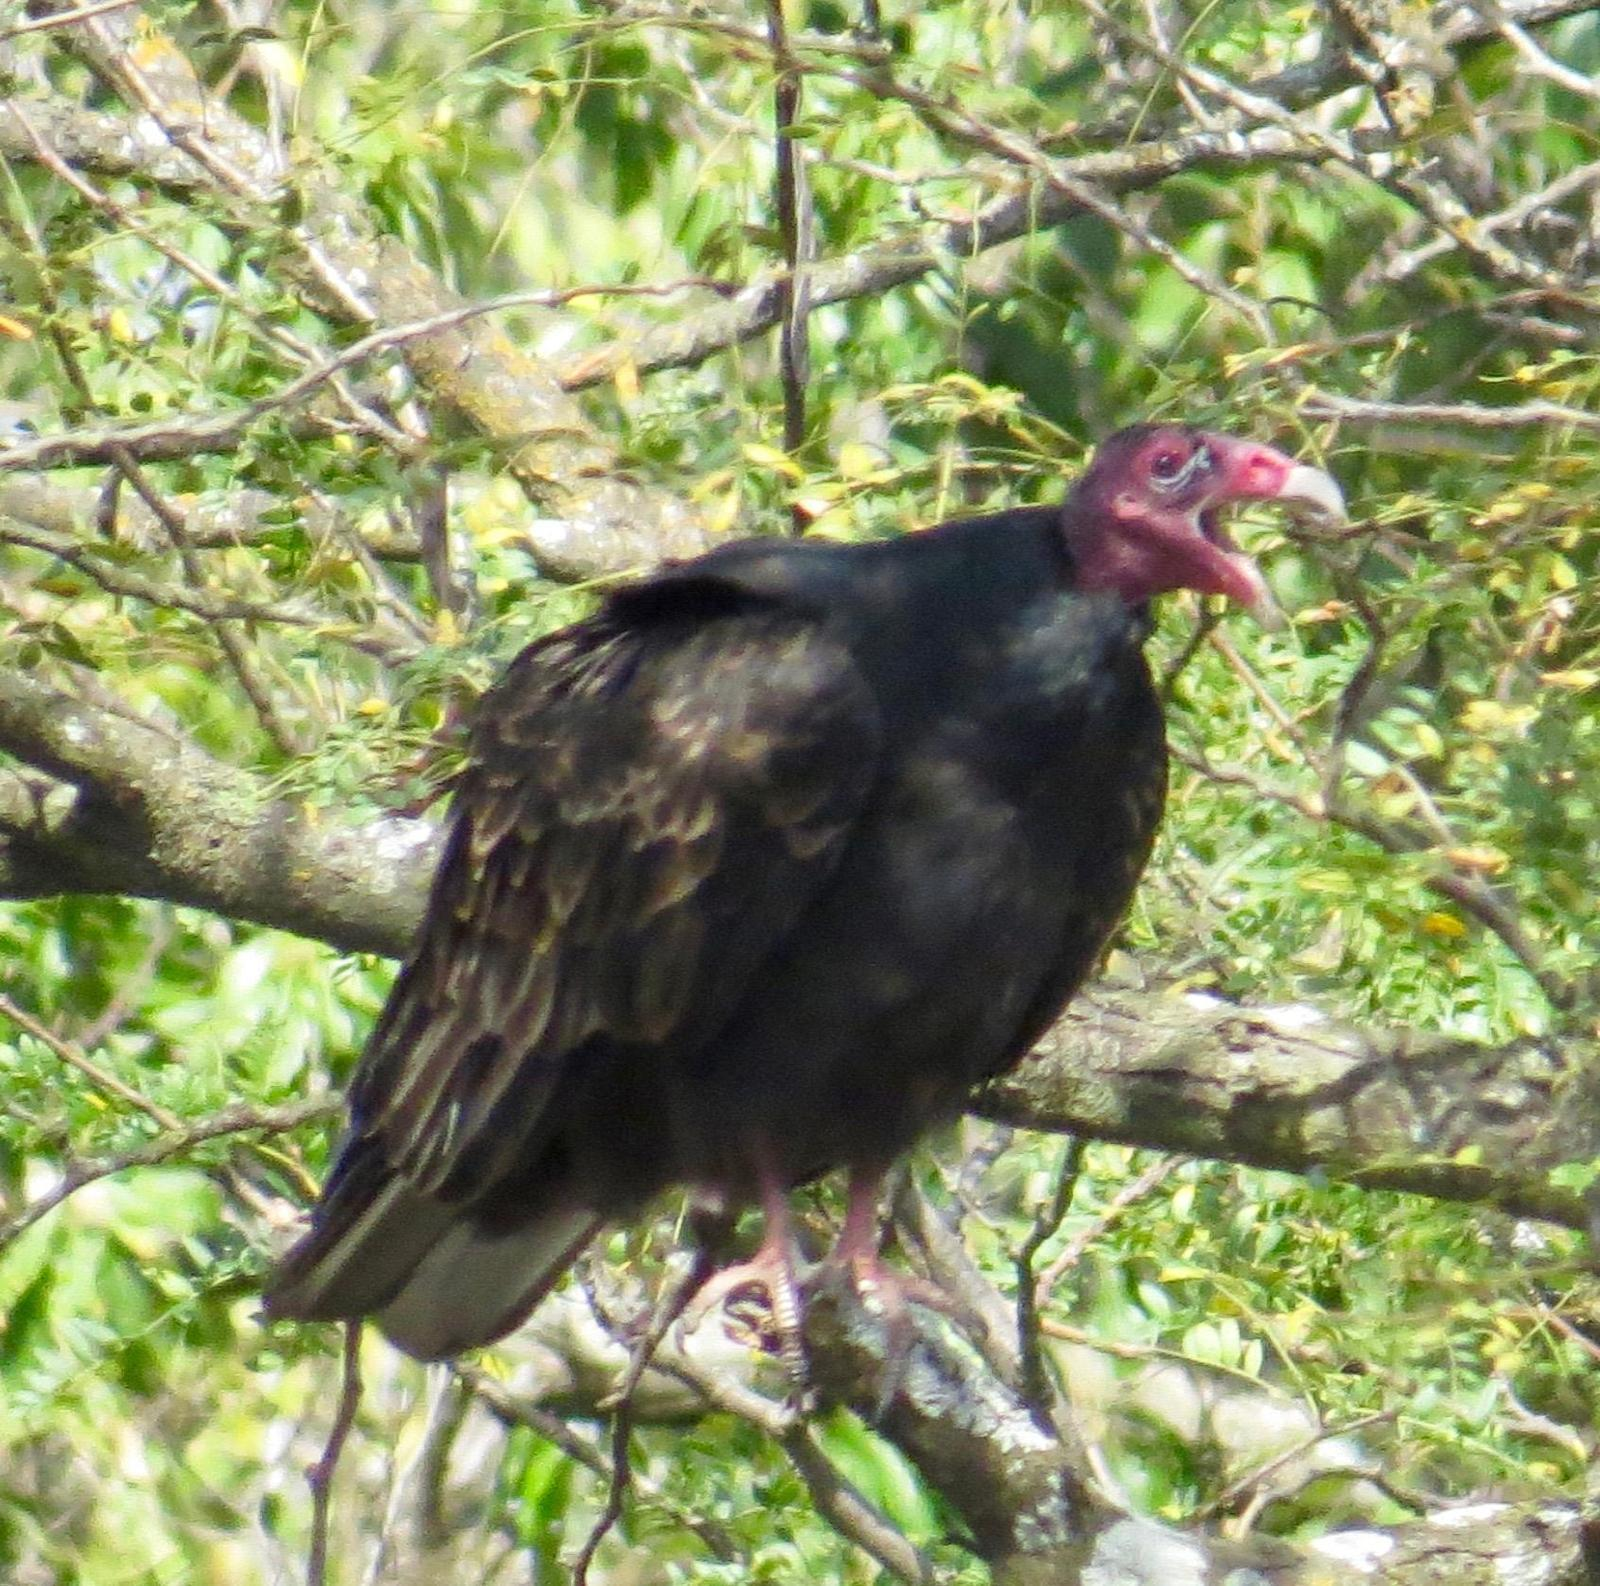 Turkey Vulture (Northern) Photo by Don Glasco